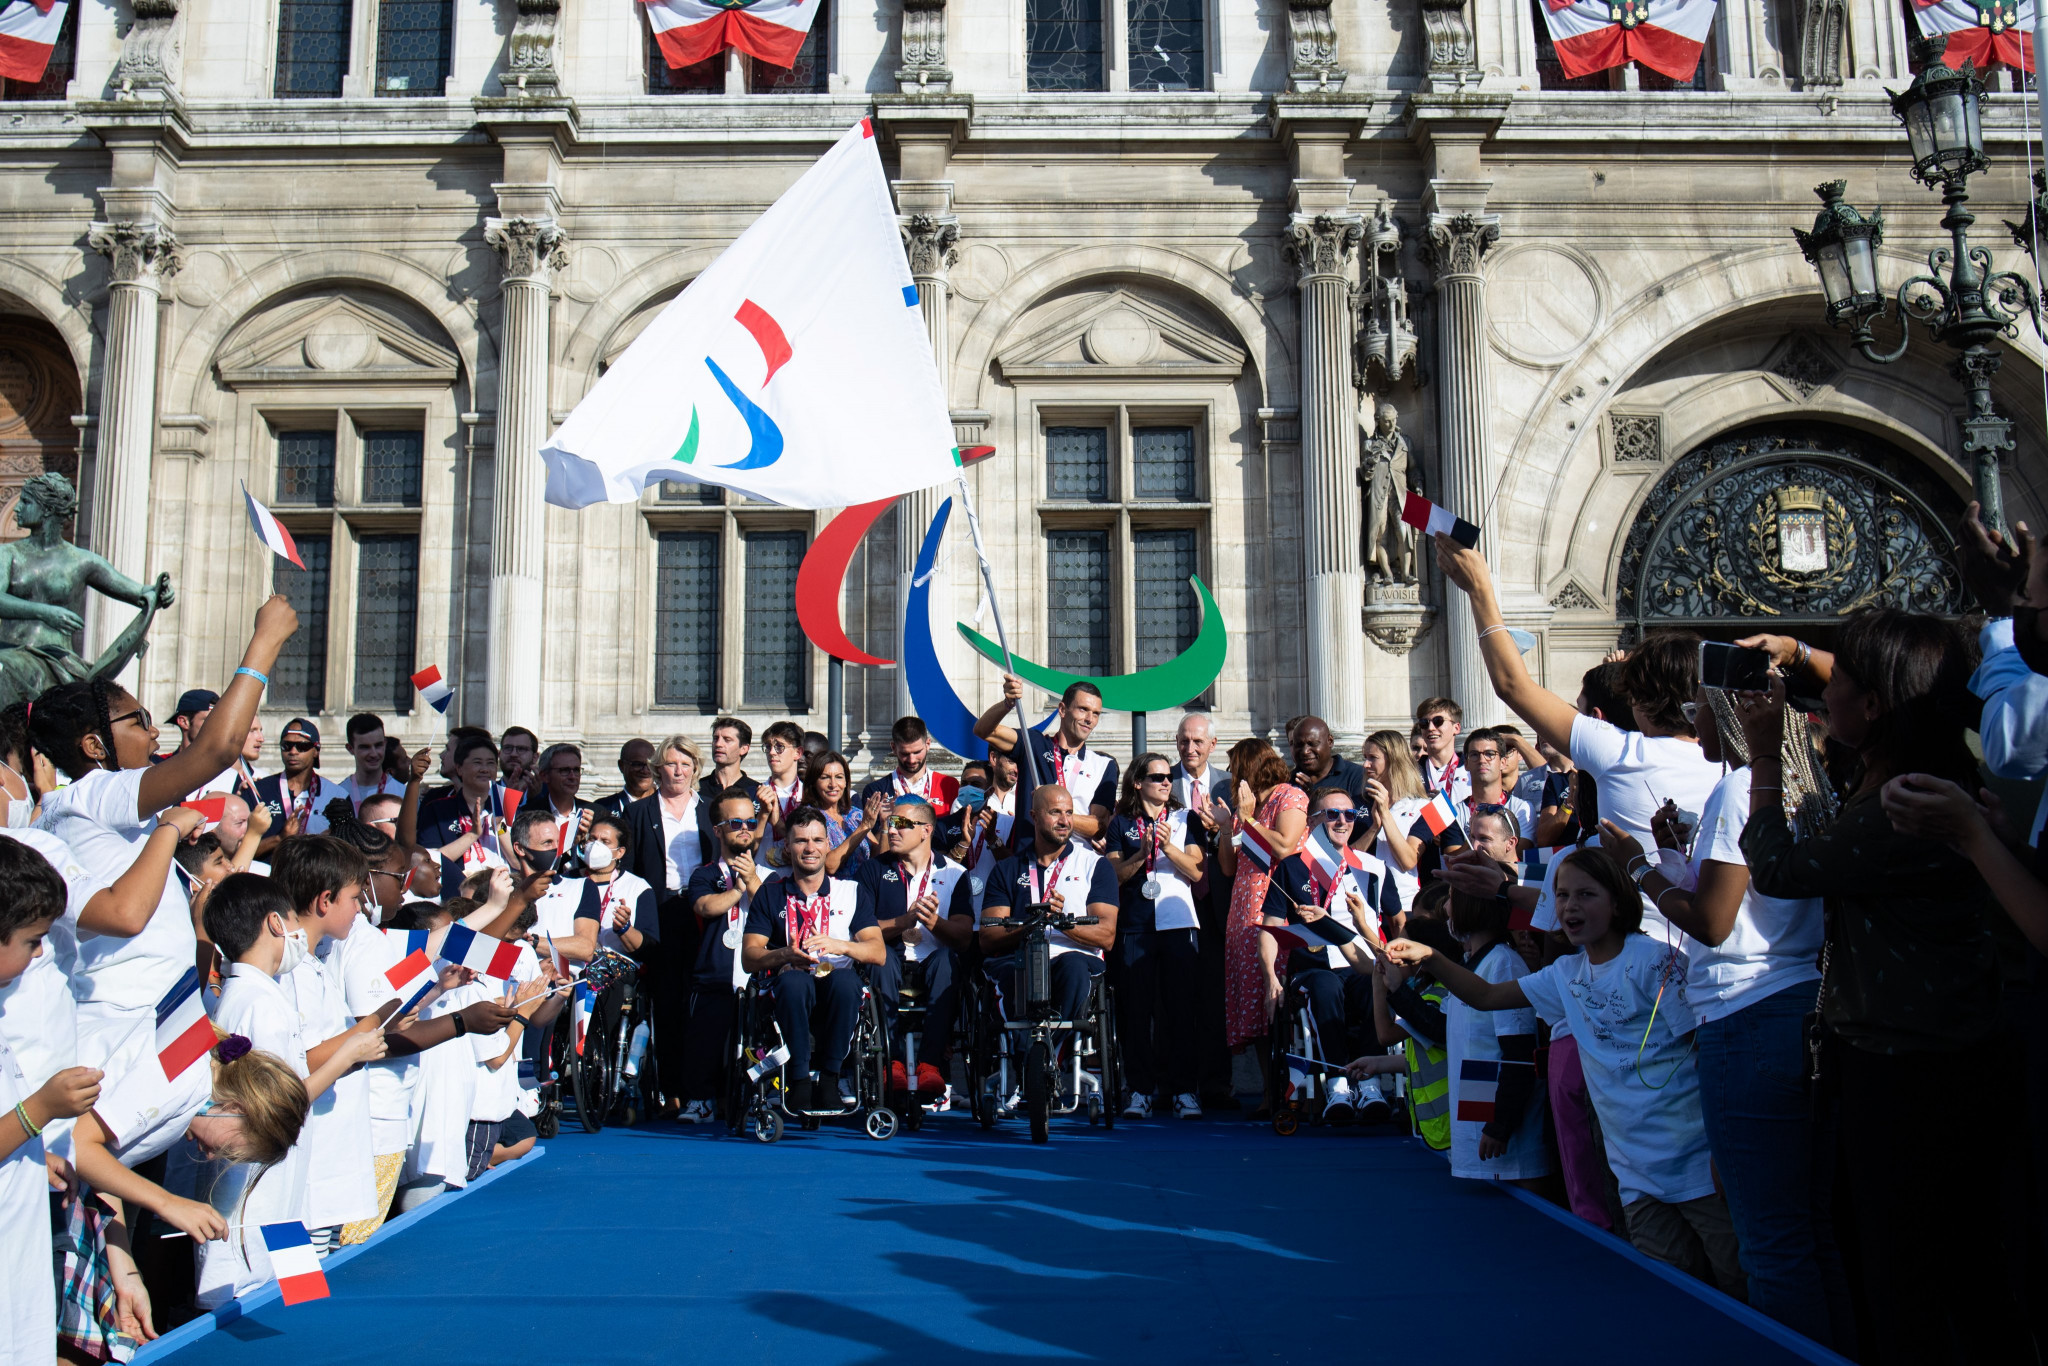 Olympic and Paralympic flags to tour France as part of Paris 2024 celebrations